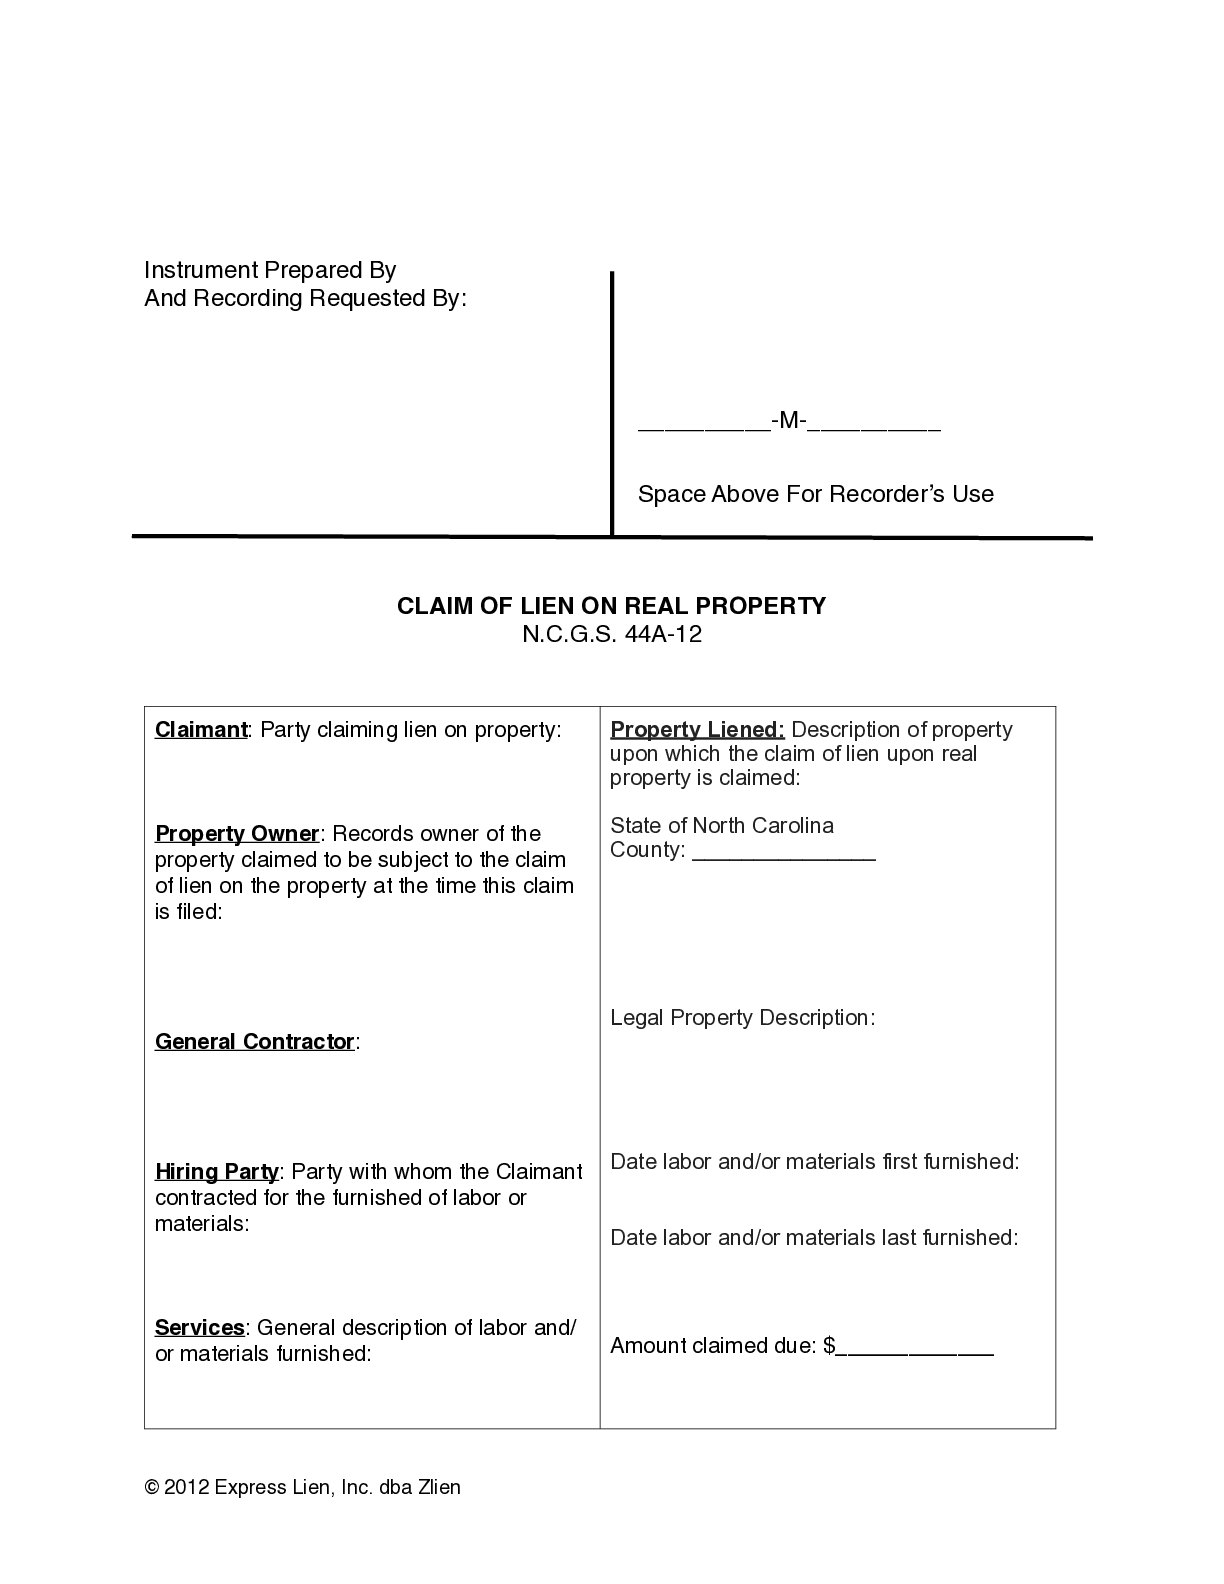 North Carolina Subcontractors Claim of Lien on Real Property Form - free from